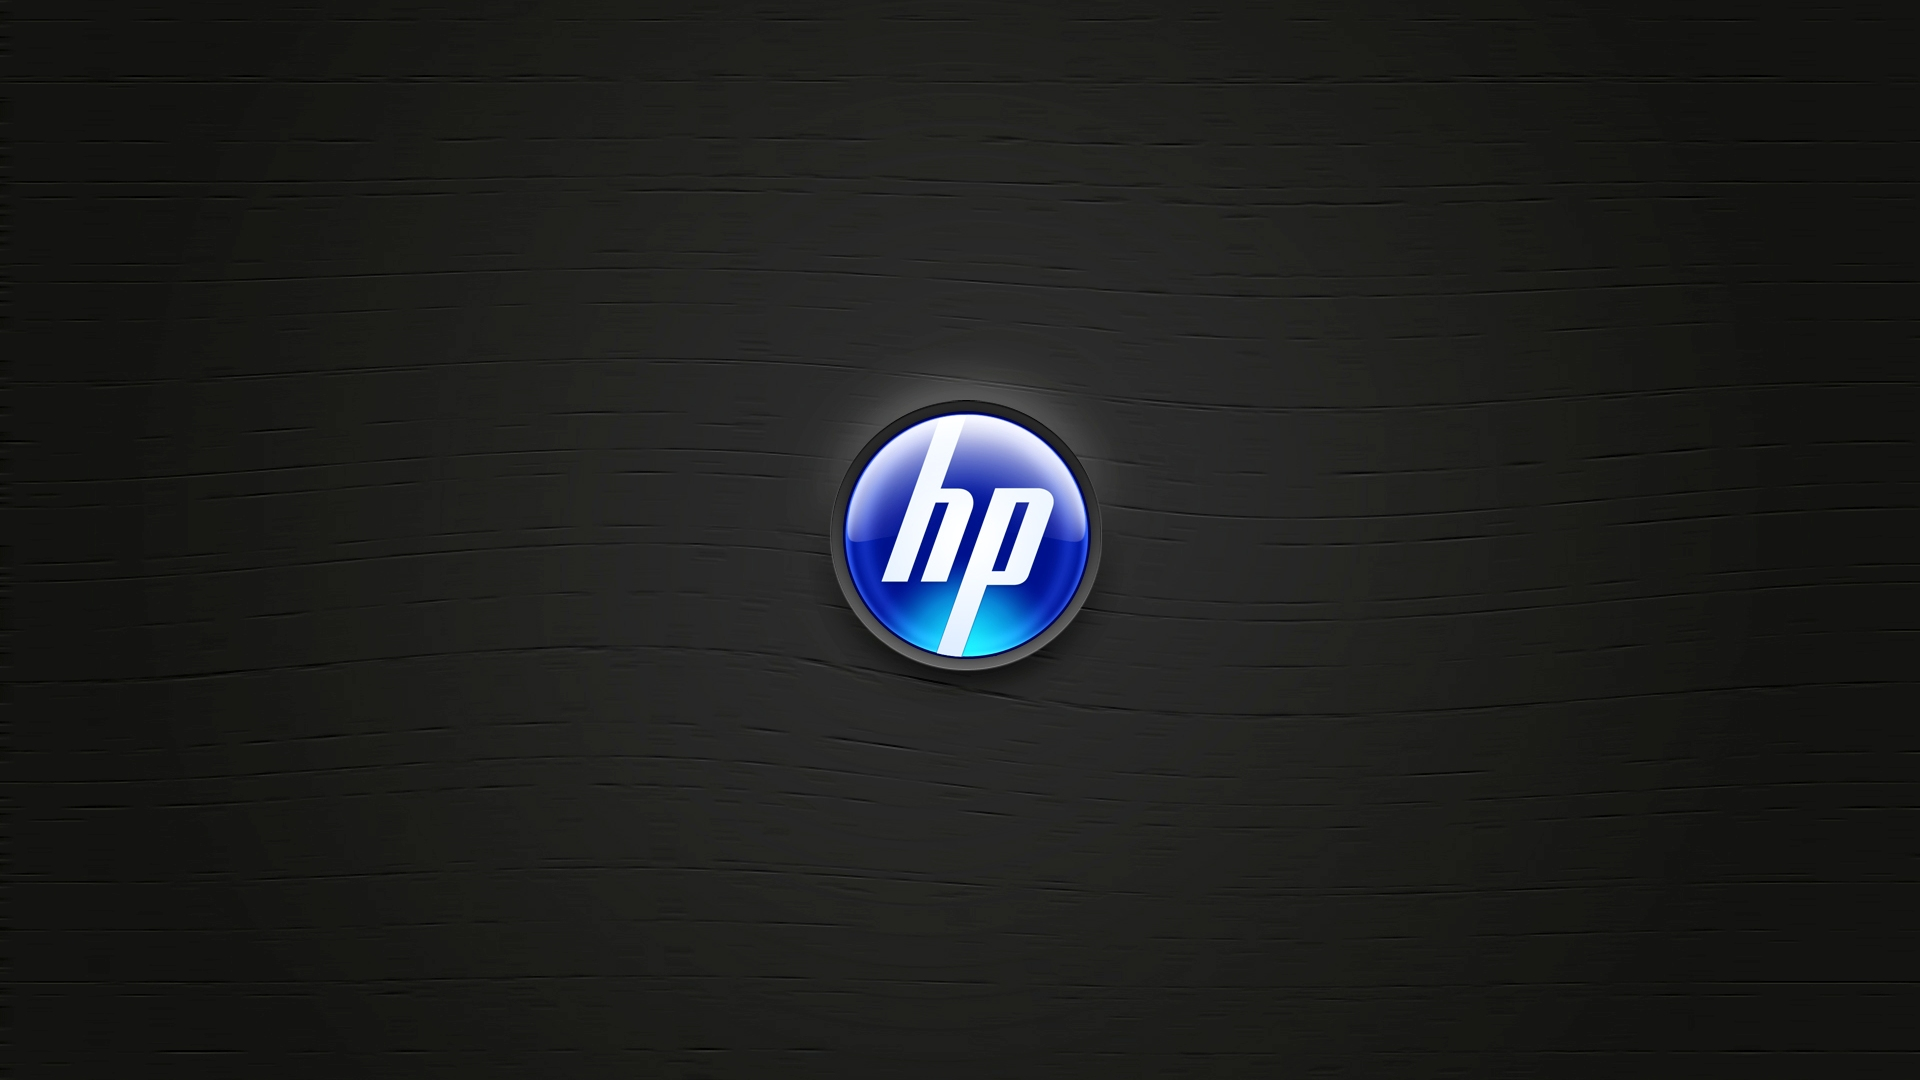 wallpaper hp 3d backgrounds hd wallpaper background desktop